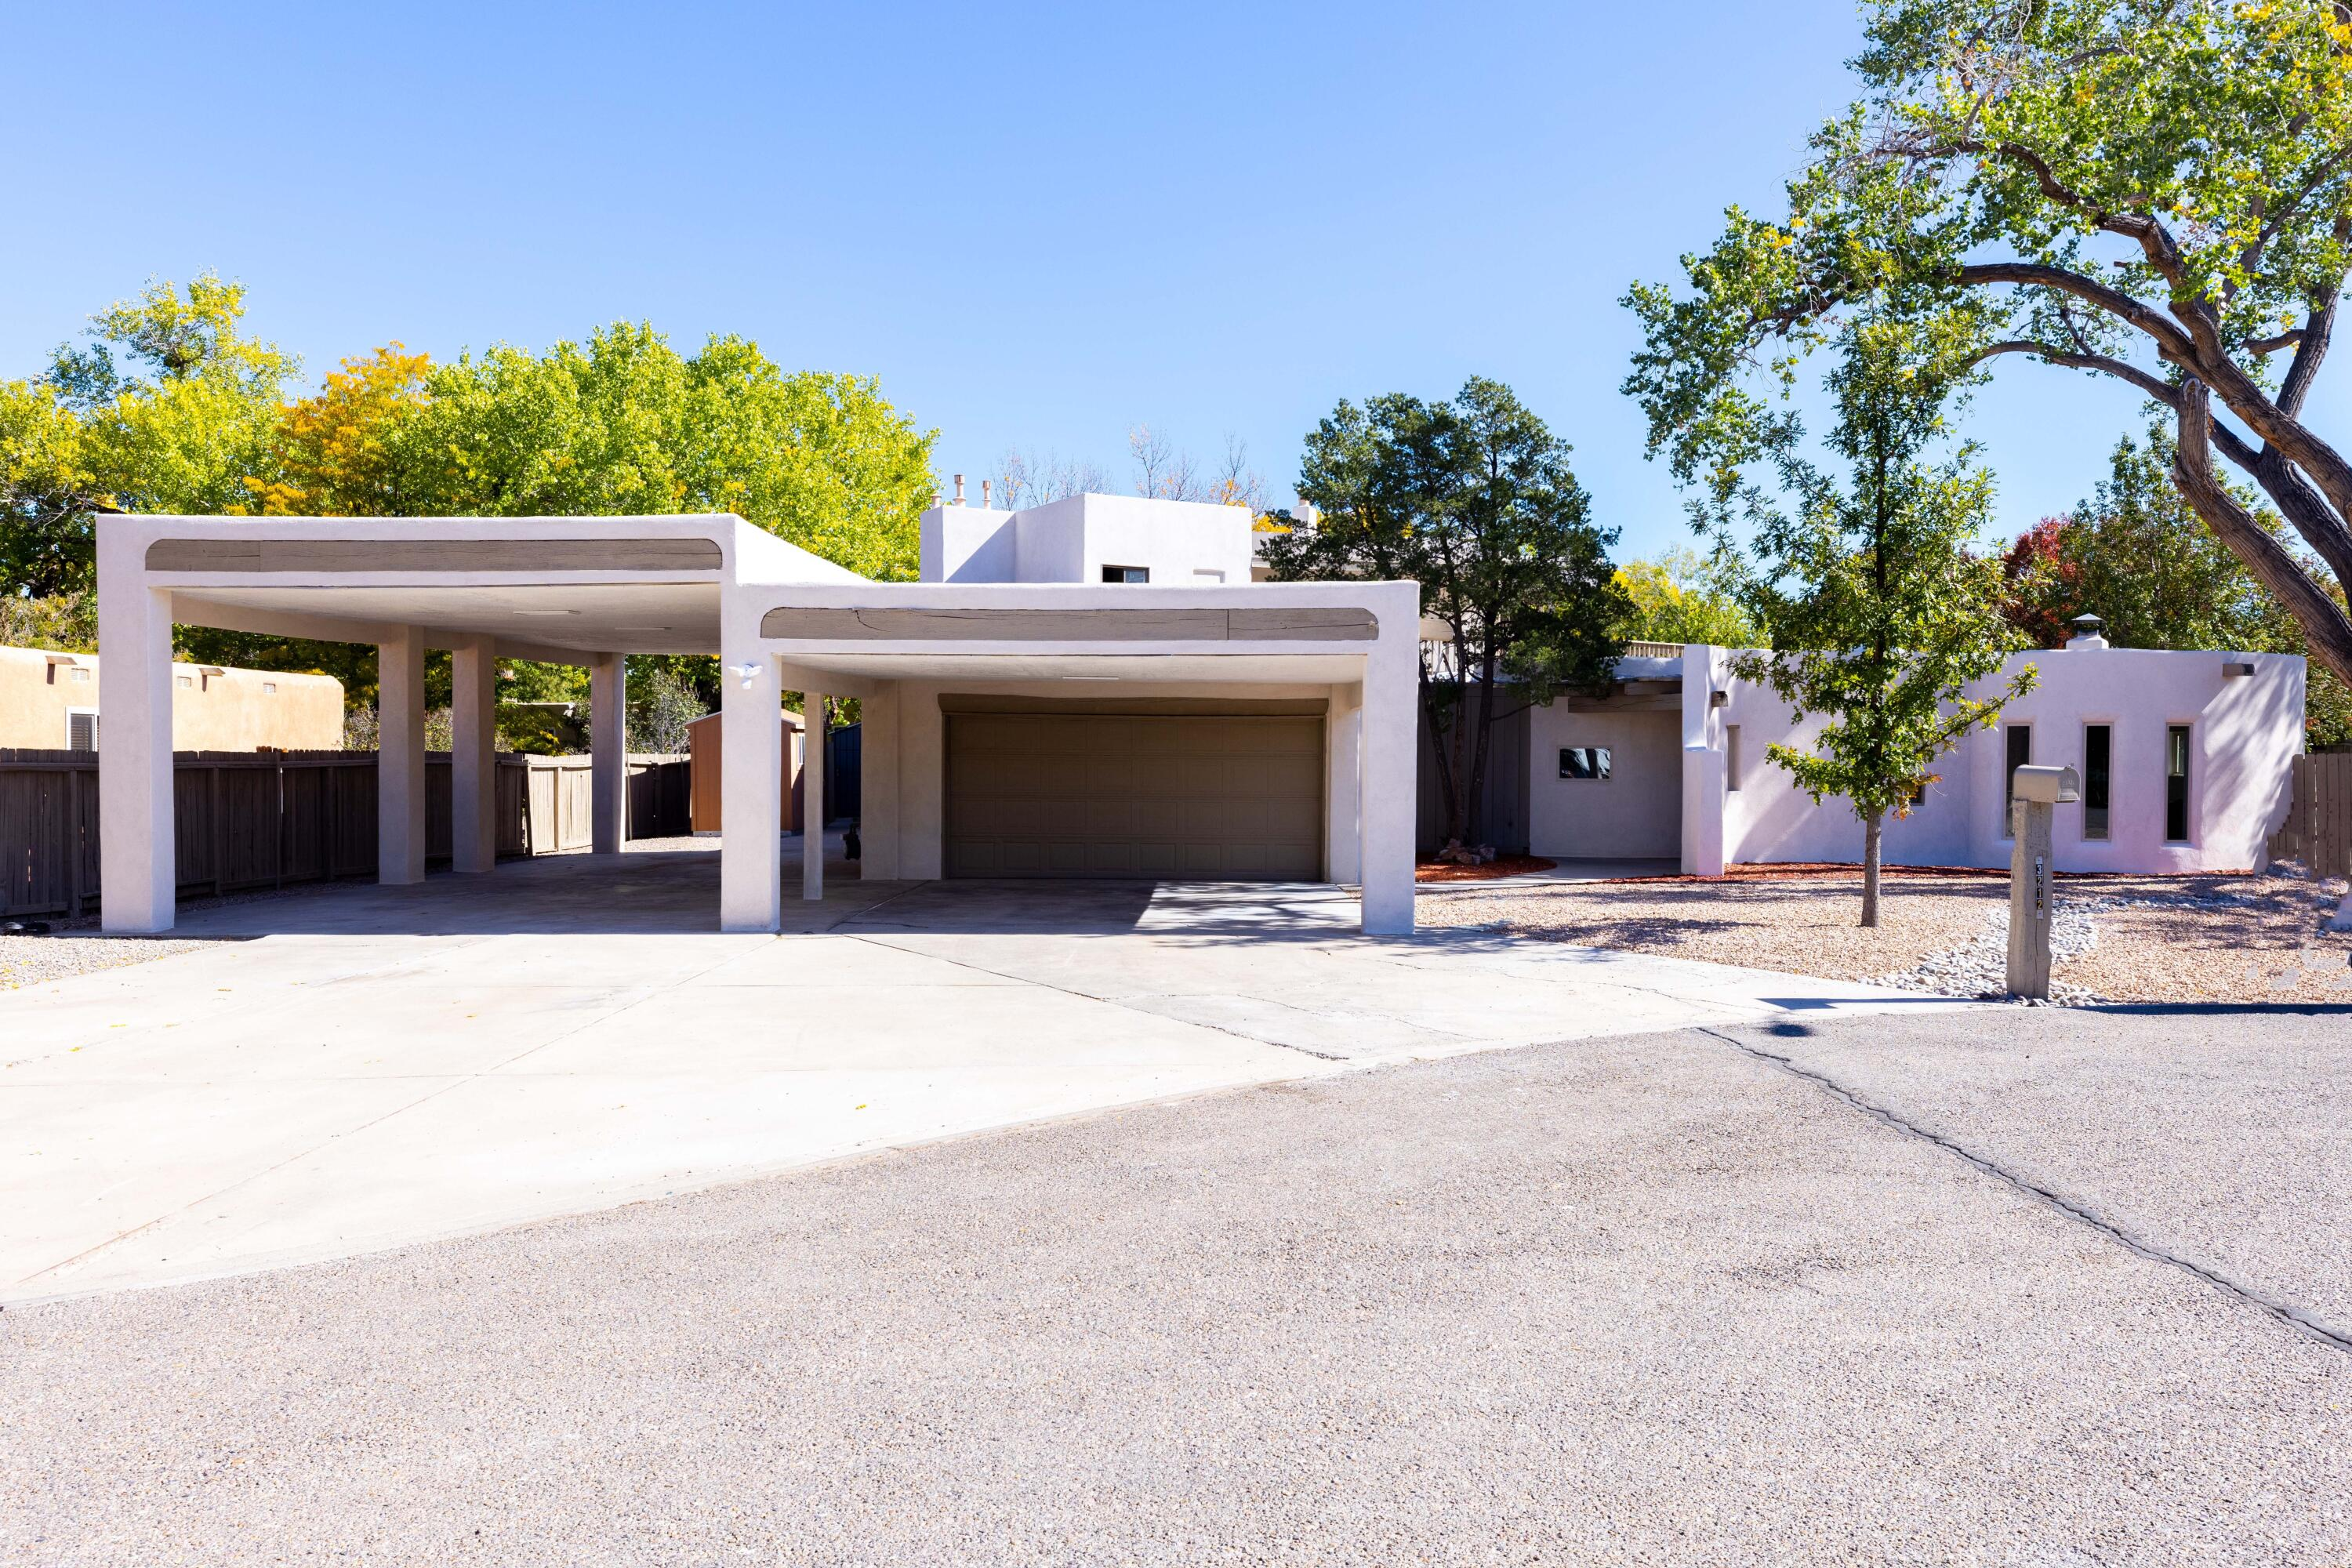 Come take a look at this masterfully renovated home in the heart of the North Valley! From the leathered granite counter tops to the venetian plastered kiva fireplaces this house has been transformed from top to bottom.  Complete with an indoor pool, two living areas, and two master suites that include spa like bathrooms you will have everything your heart desires. Refrigerated air throughout including the pool room, radiant flooring, outdoor water feature, an expansive master balcony and a very privately situated backyard are just some of the many many more features this house has to offer.